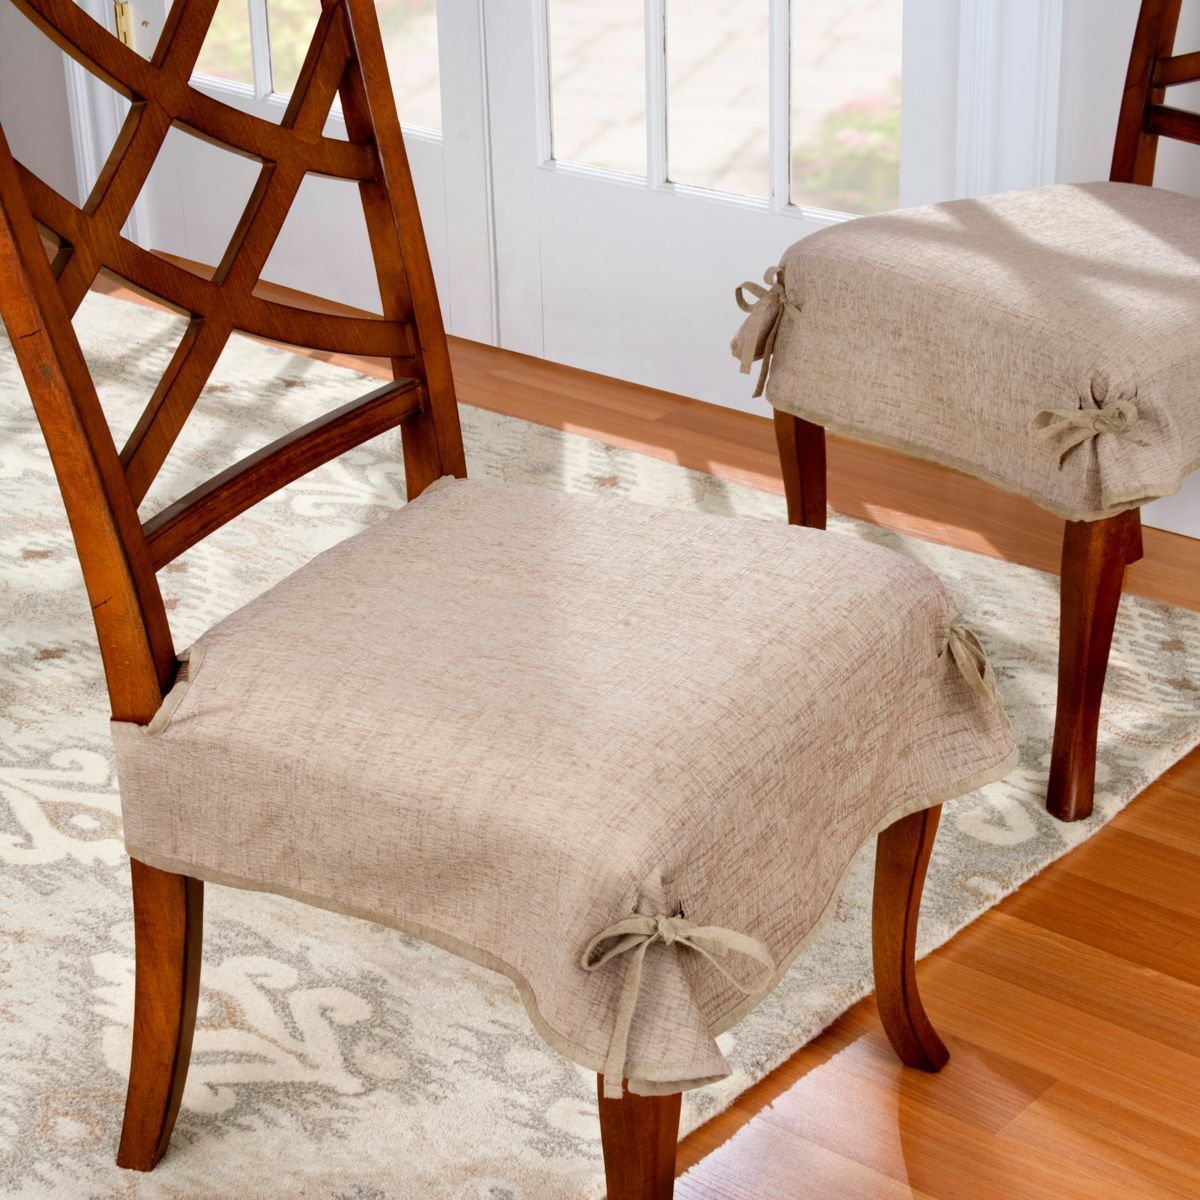 Chenille Dining Chair Seat Covers Set Of 2 Slipcovers For Chairs Seat Covers For Chairs Dining Chair Seat Covers